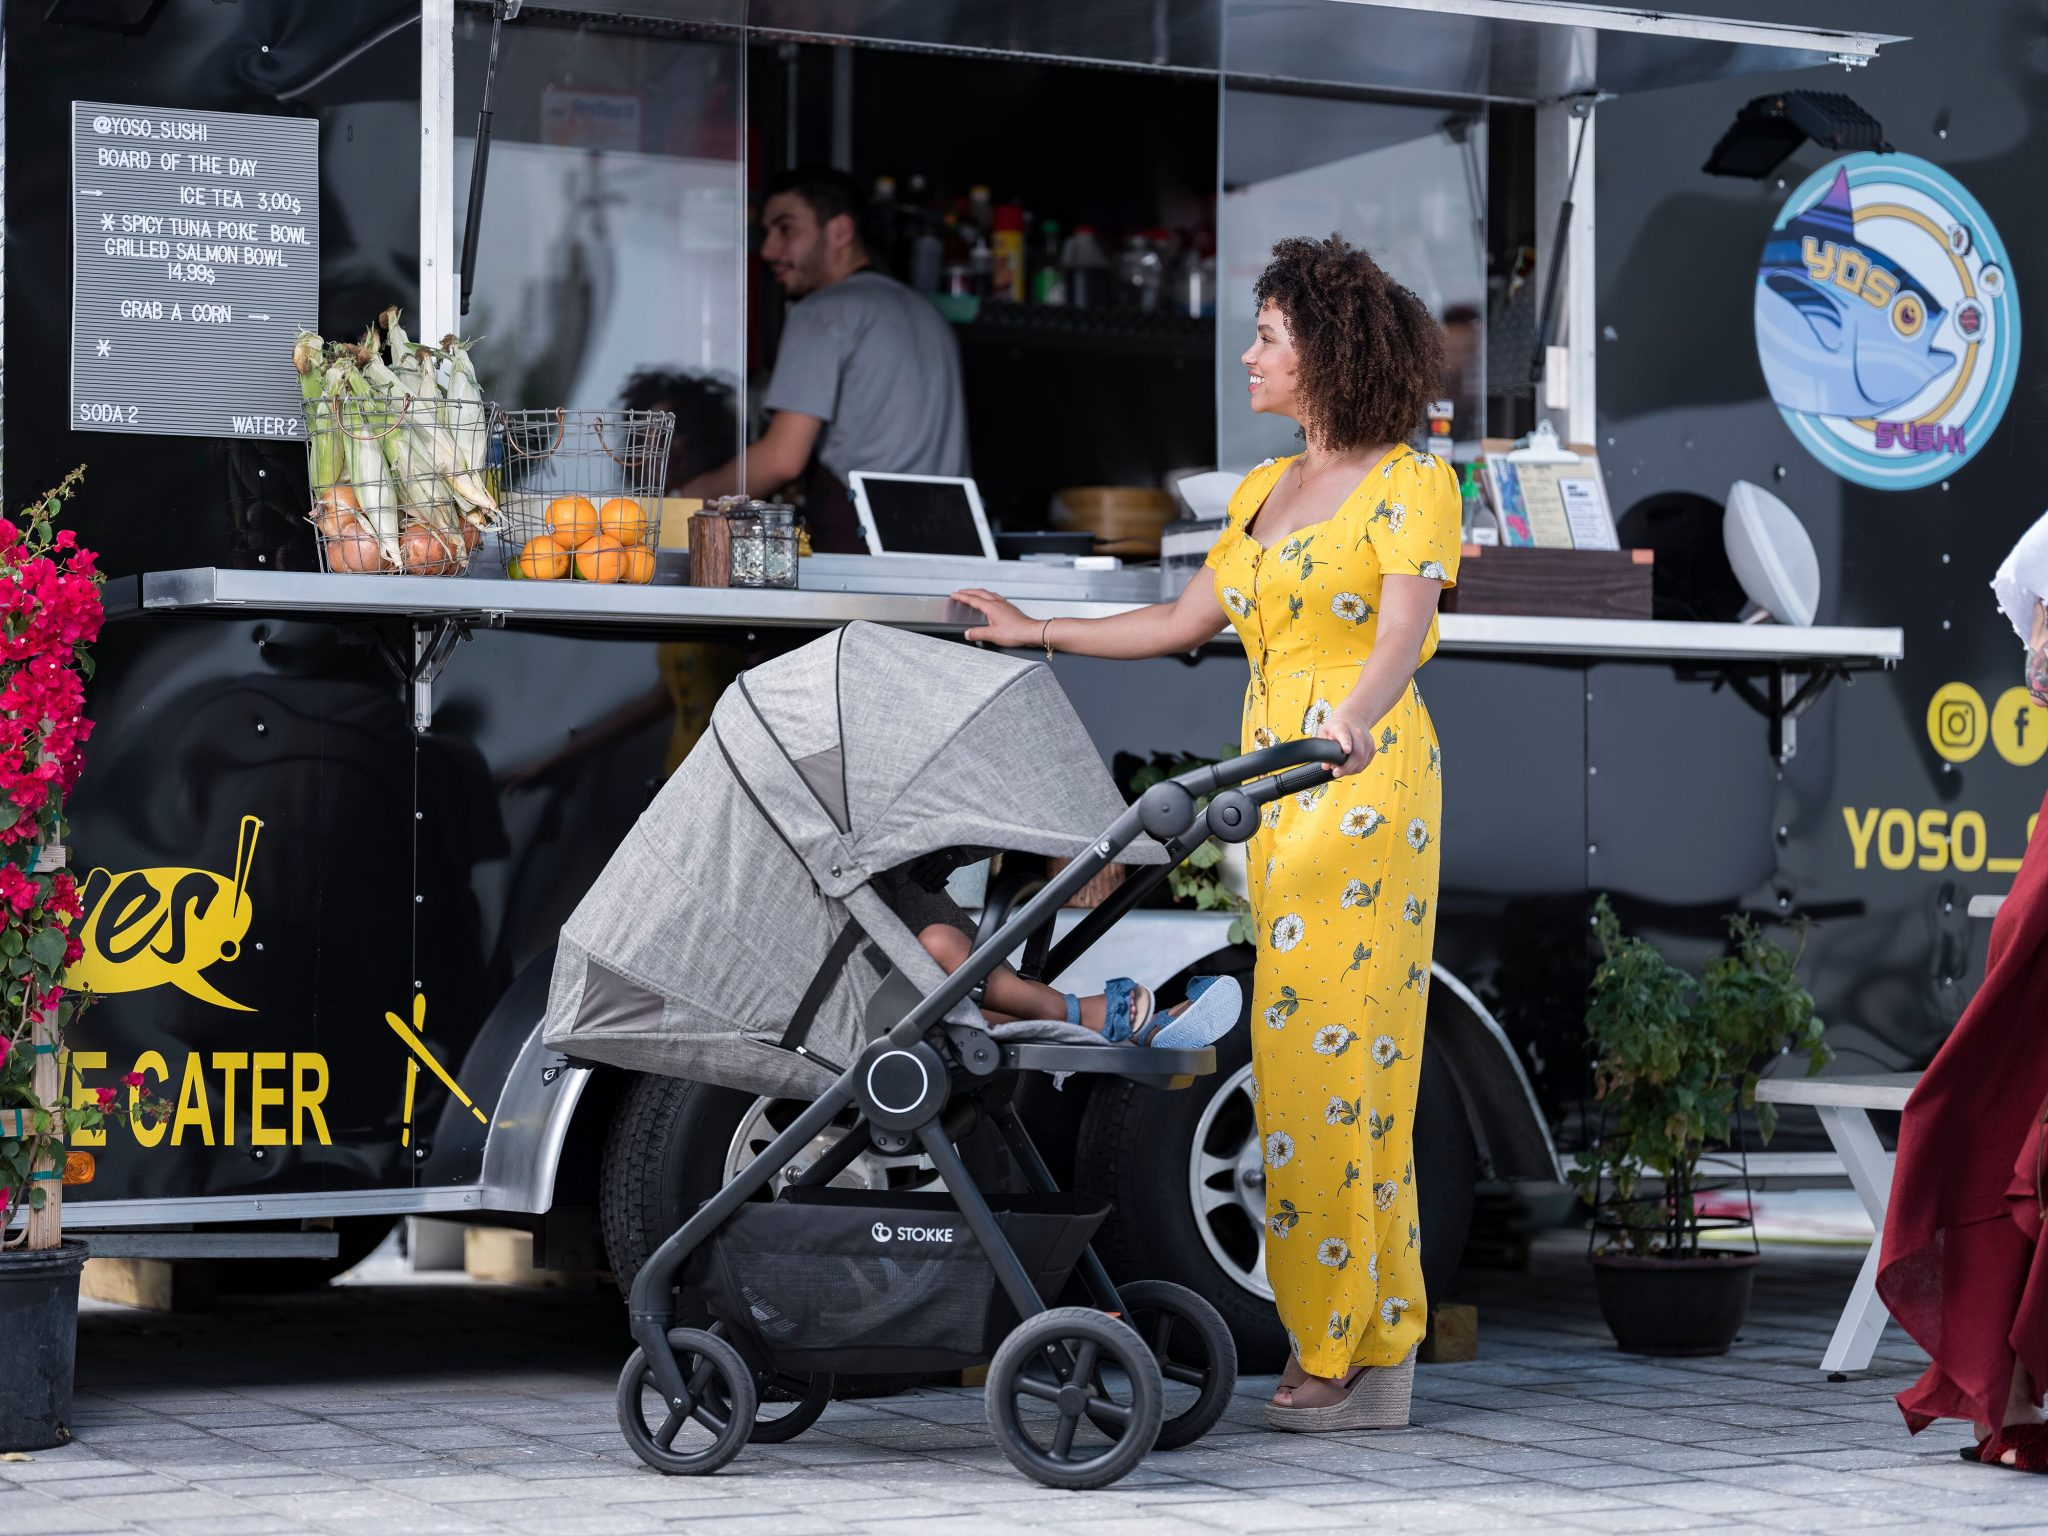 Stokke Launches Stokke Beat A Brand New Stroller Perfect